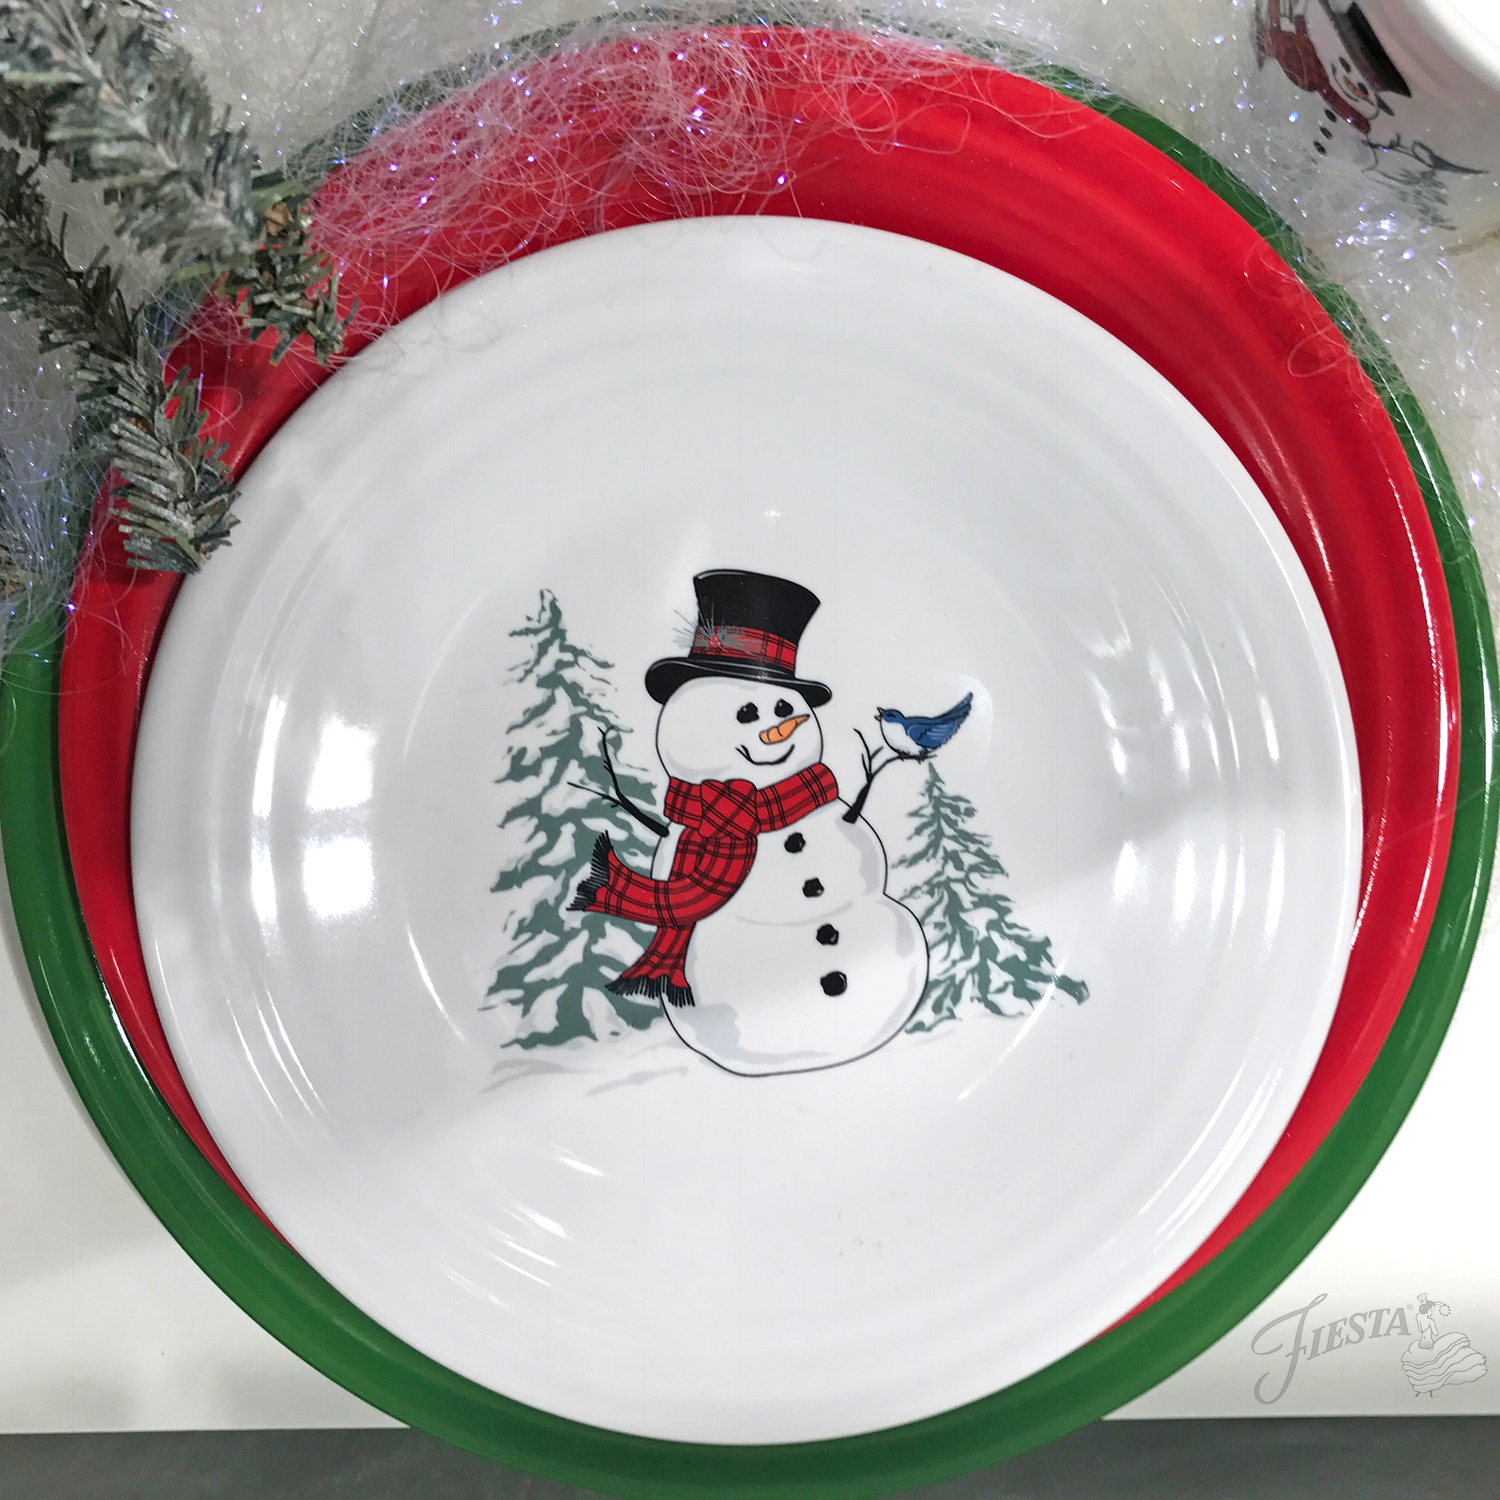 New for Christmas Jolly Fiesta® u0027Snowmenu0027 will be decorating Luncheon Plates and Tapered Mugs this Christmas! & Fiesta Dinnerware | Fiesta Dinnerware Always Festive | Fiestaware ...